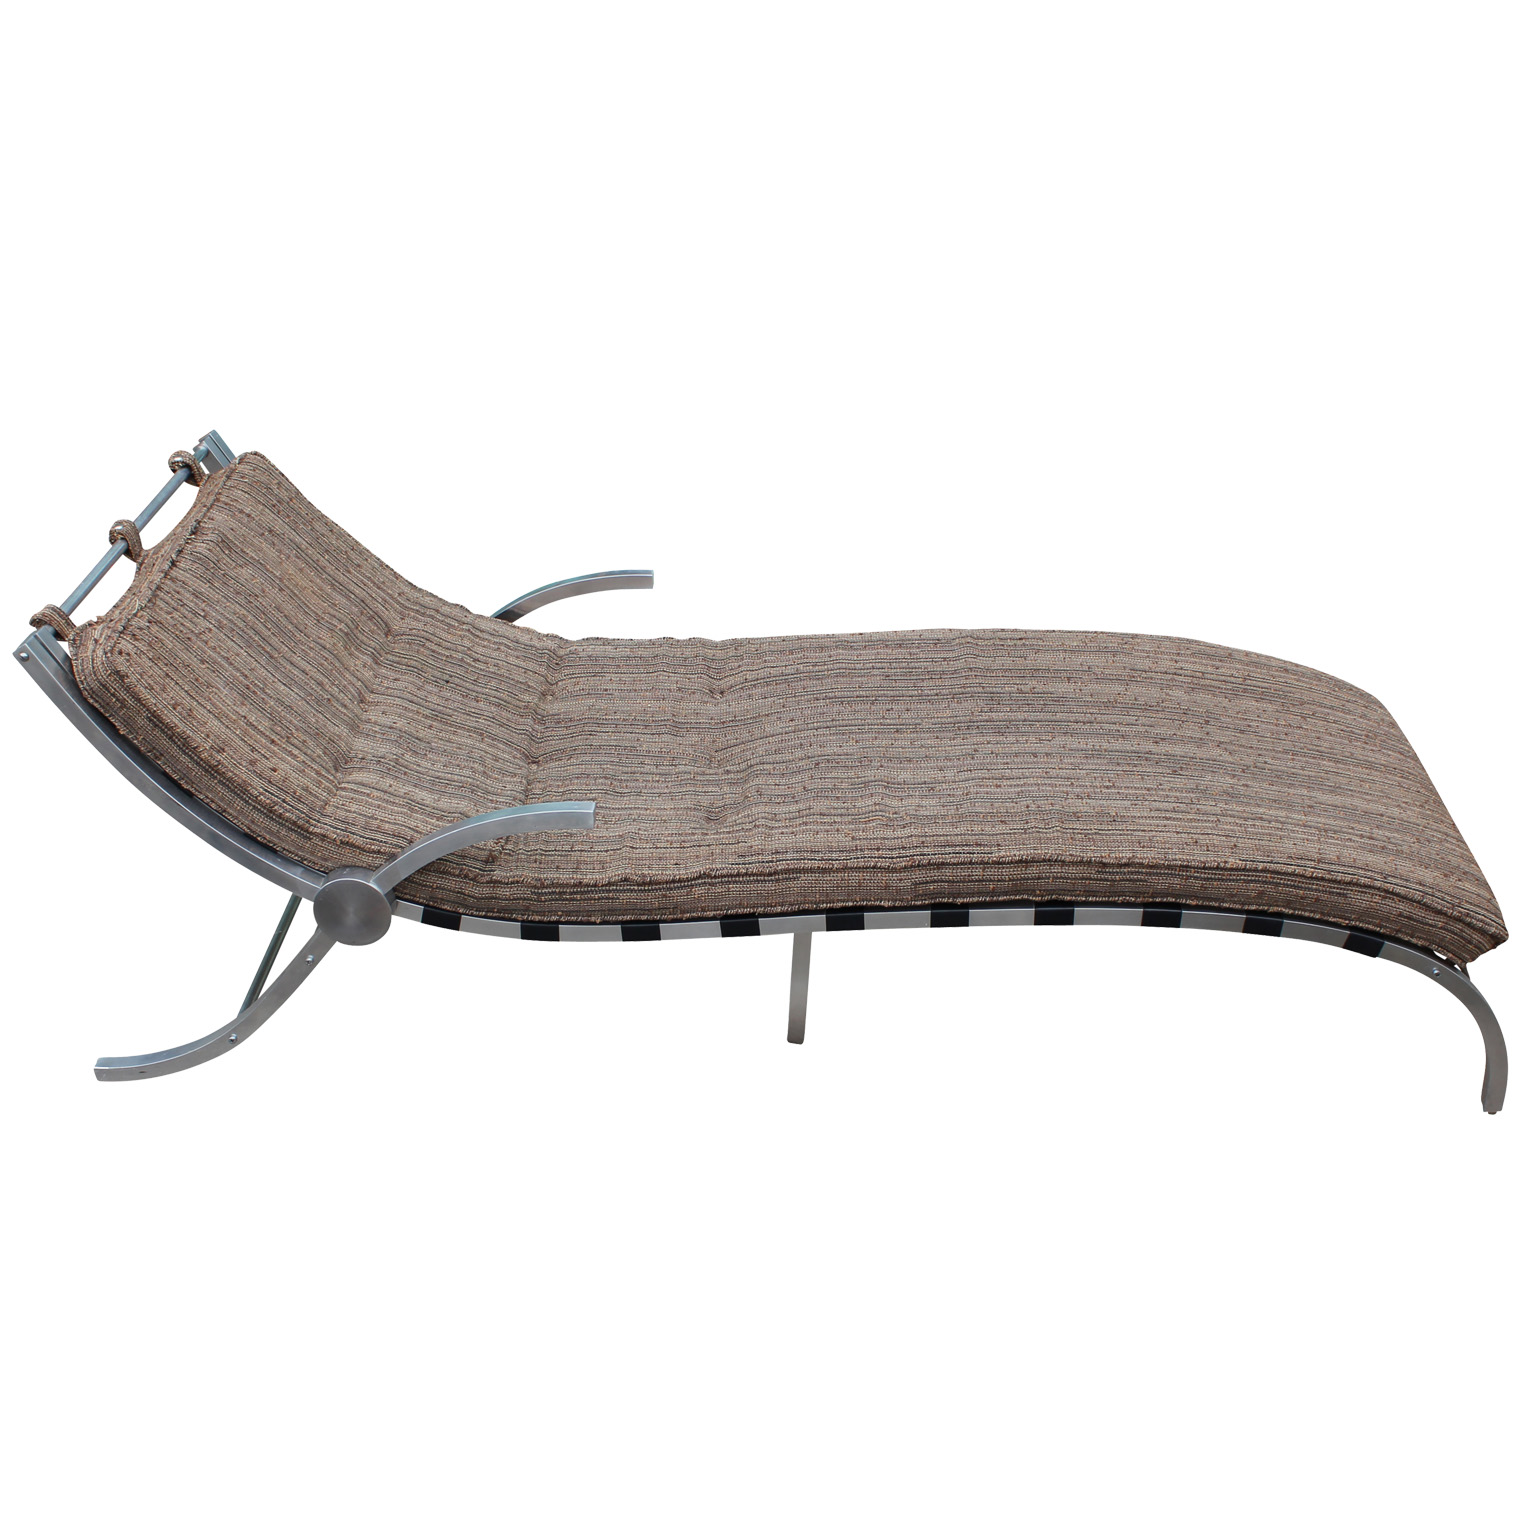 Sculptural aluminum chaise lounge for Chaise lounge aluminum